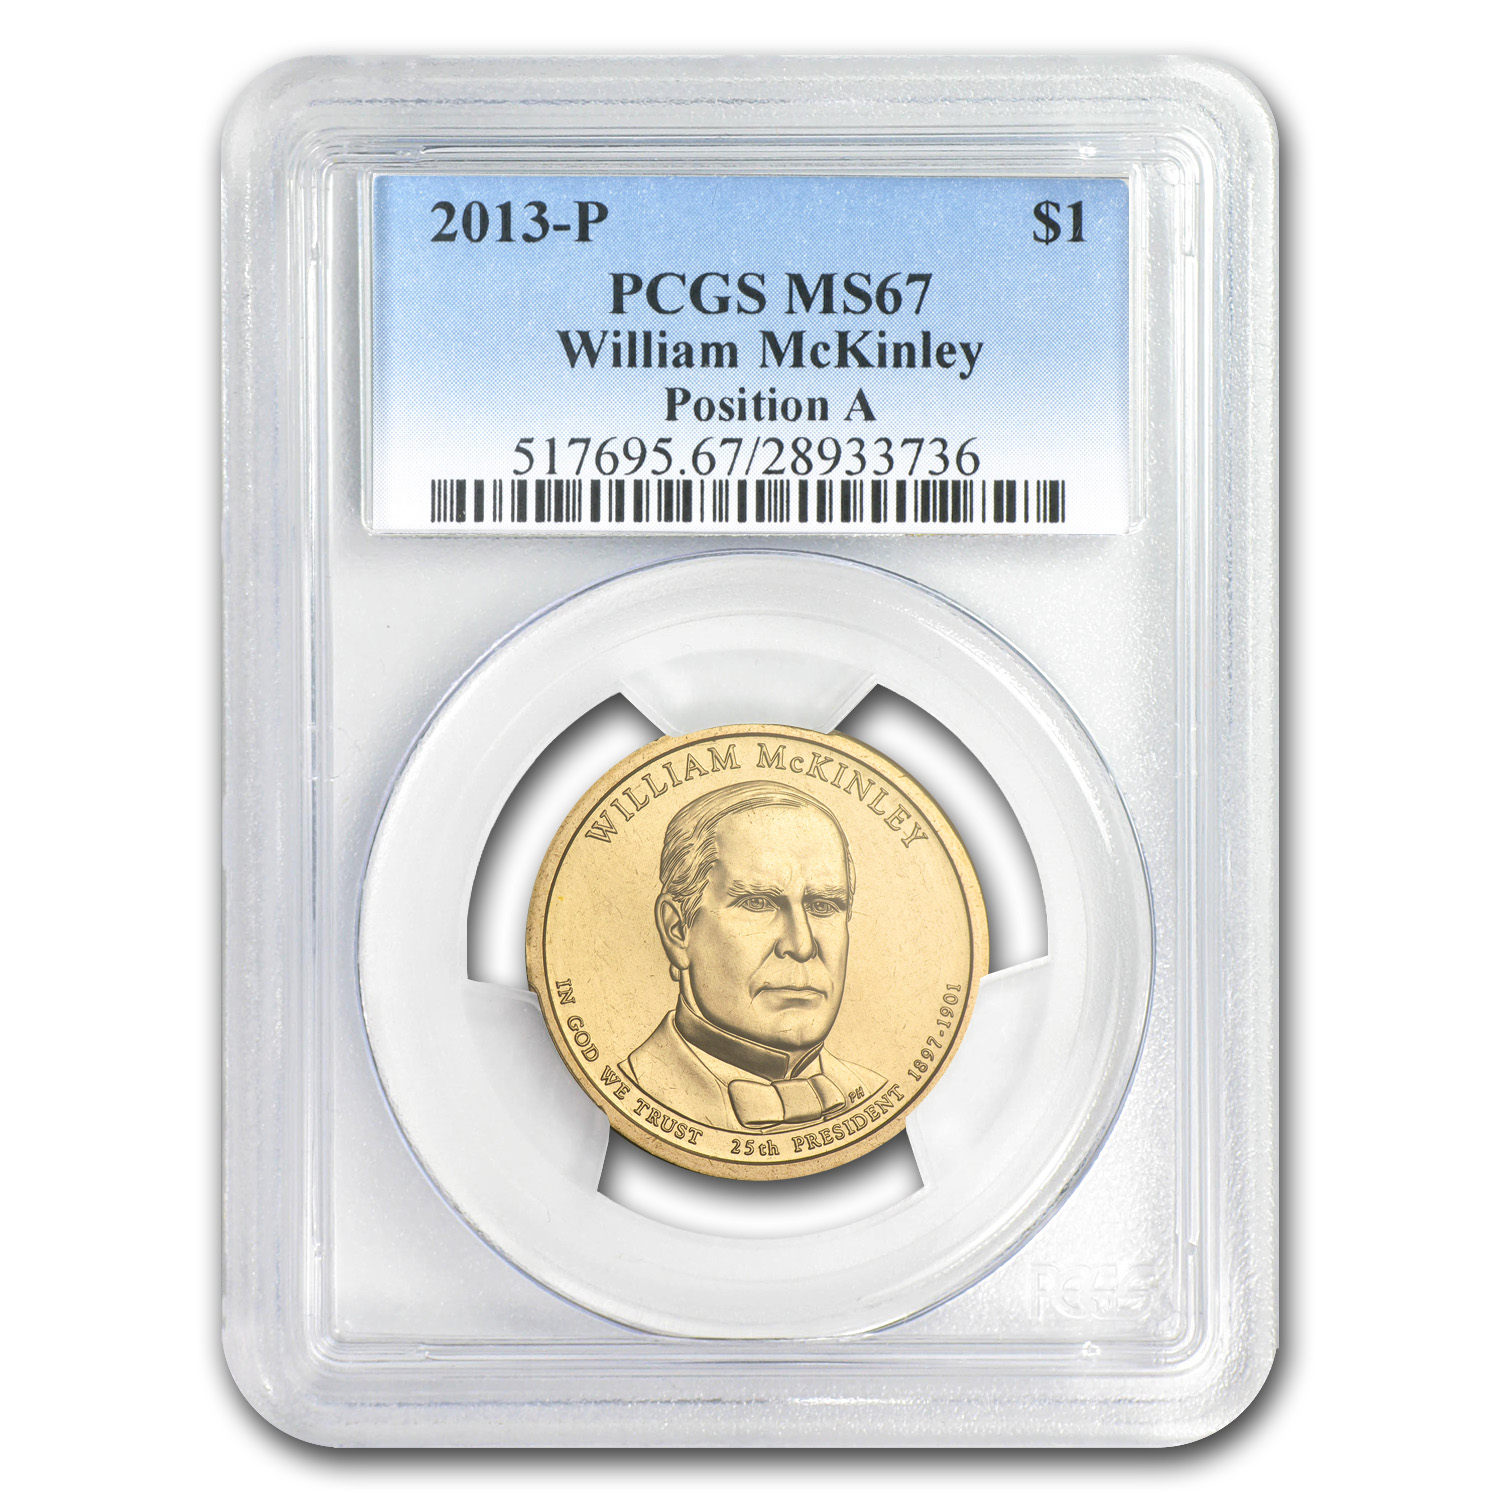 2013-P William McKinley Position A Presidential Dollar MS-67 PCGS